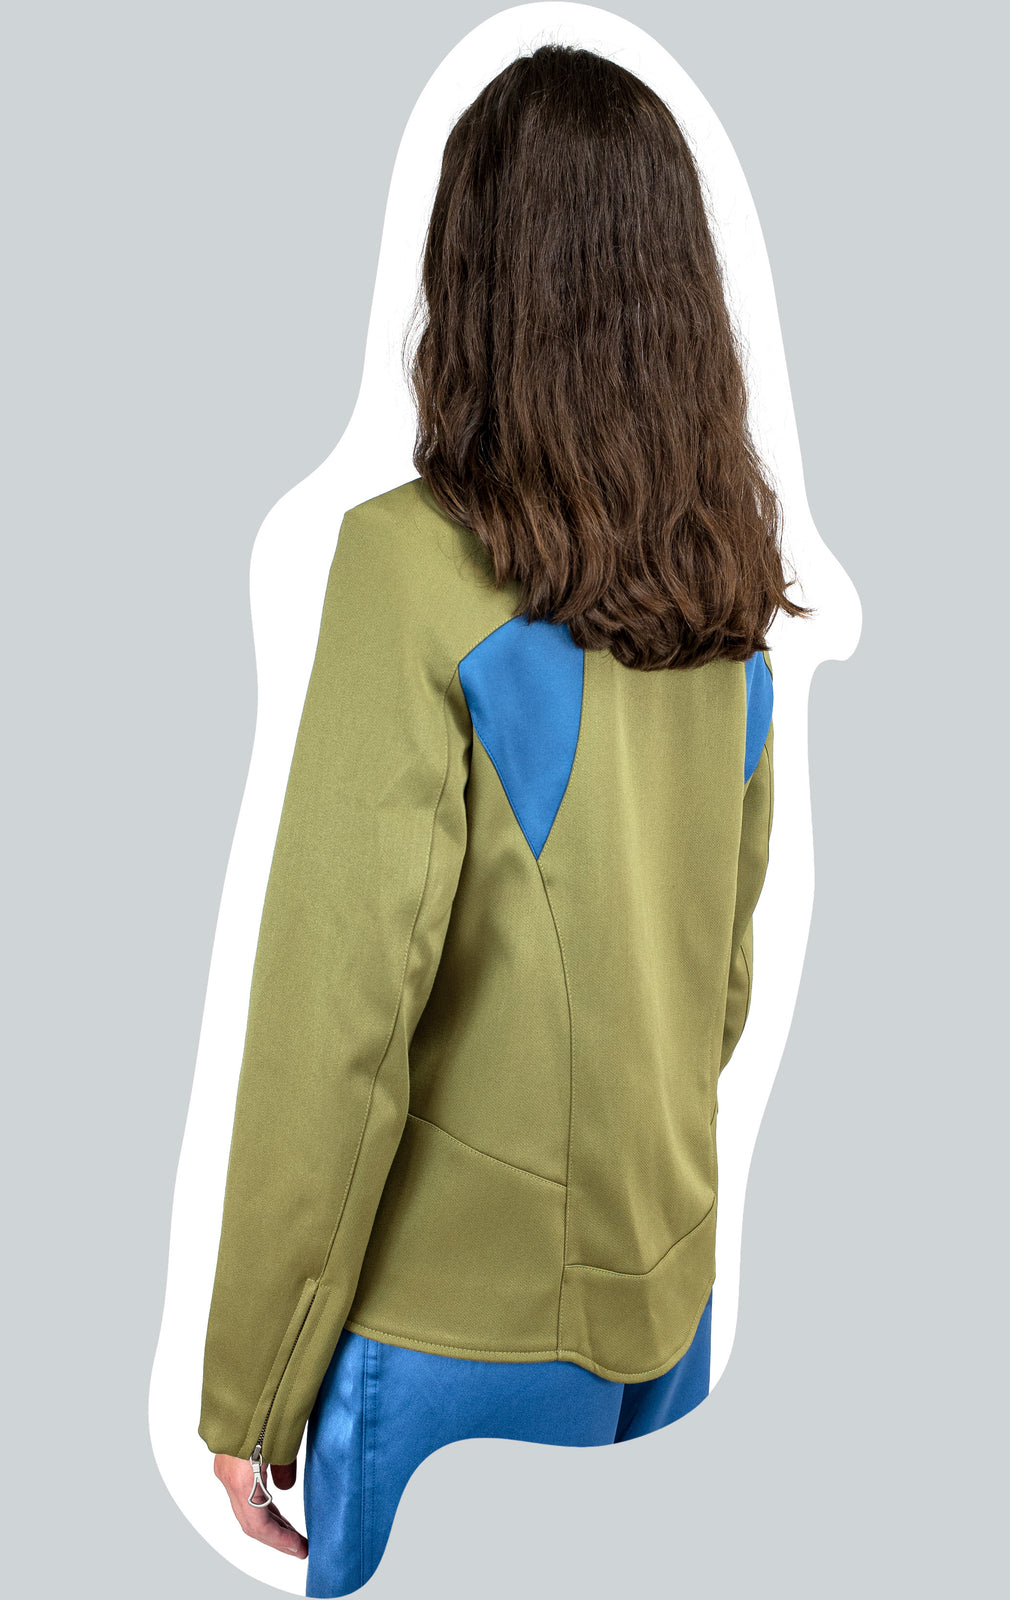 KIKO KOSTADINOV DARTED SHOULDER JACKET GREEN AW20